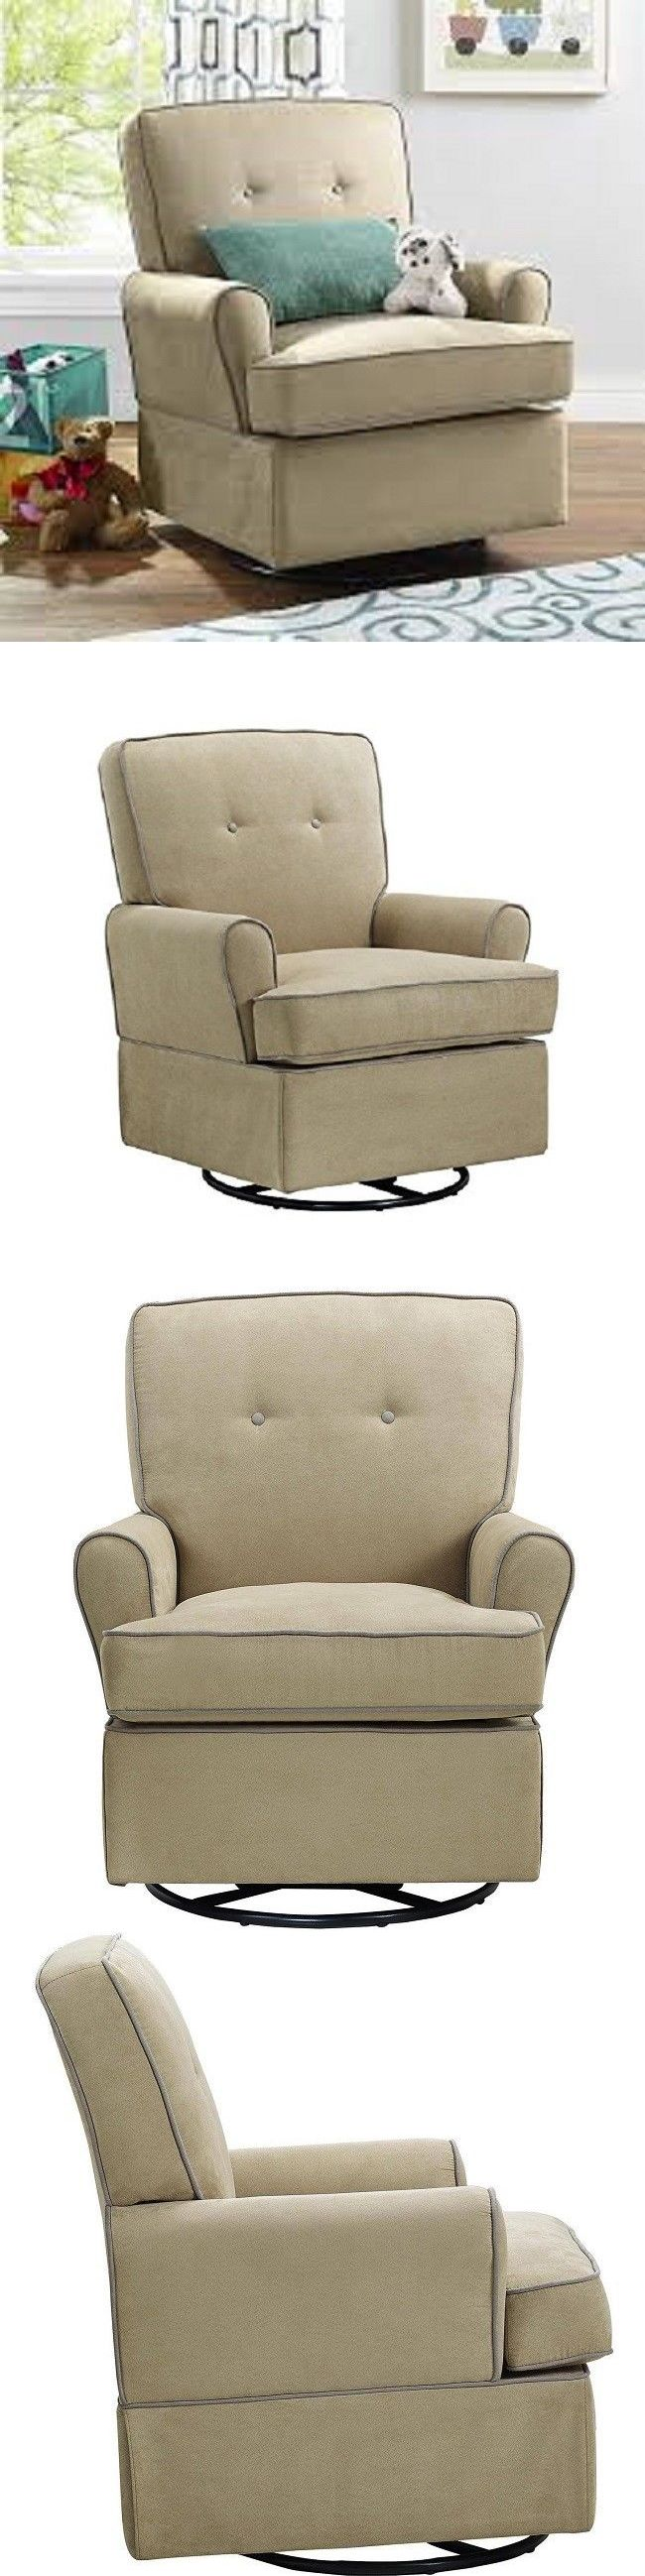 Rockers Gliders 66690: Swivel Glider Chair Baby Nursery Beige Padded Seat Cushion Baby Relax Tinsley -> BUY IT NOW ONLY: $279.99 on eBay!